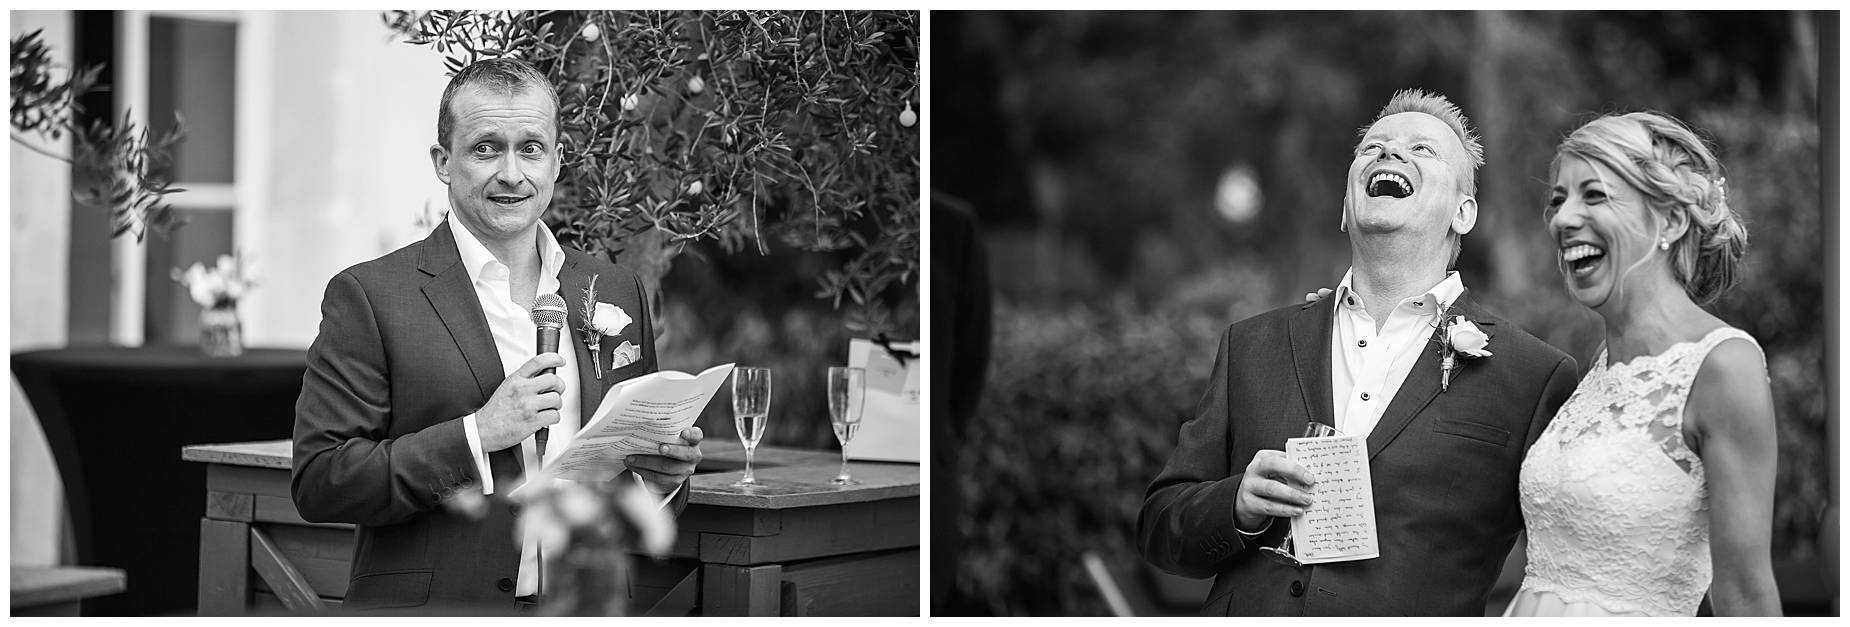 Chateau Blomac Wedding